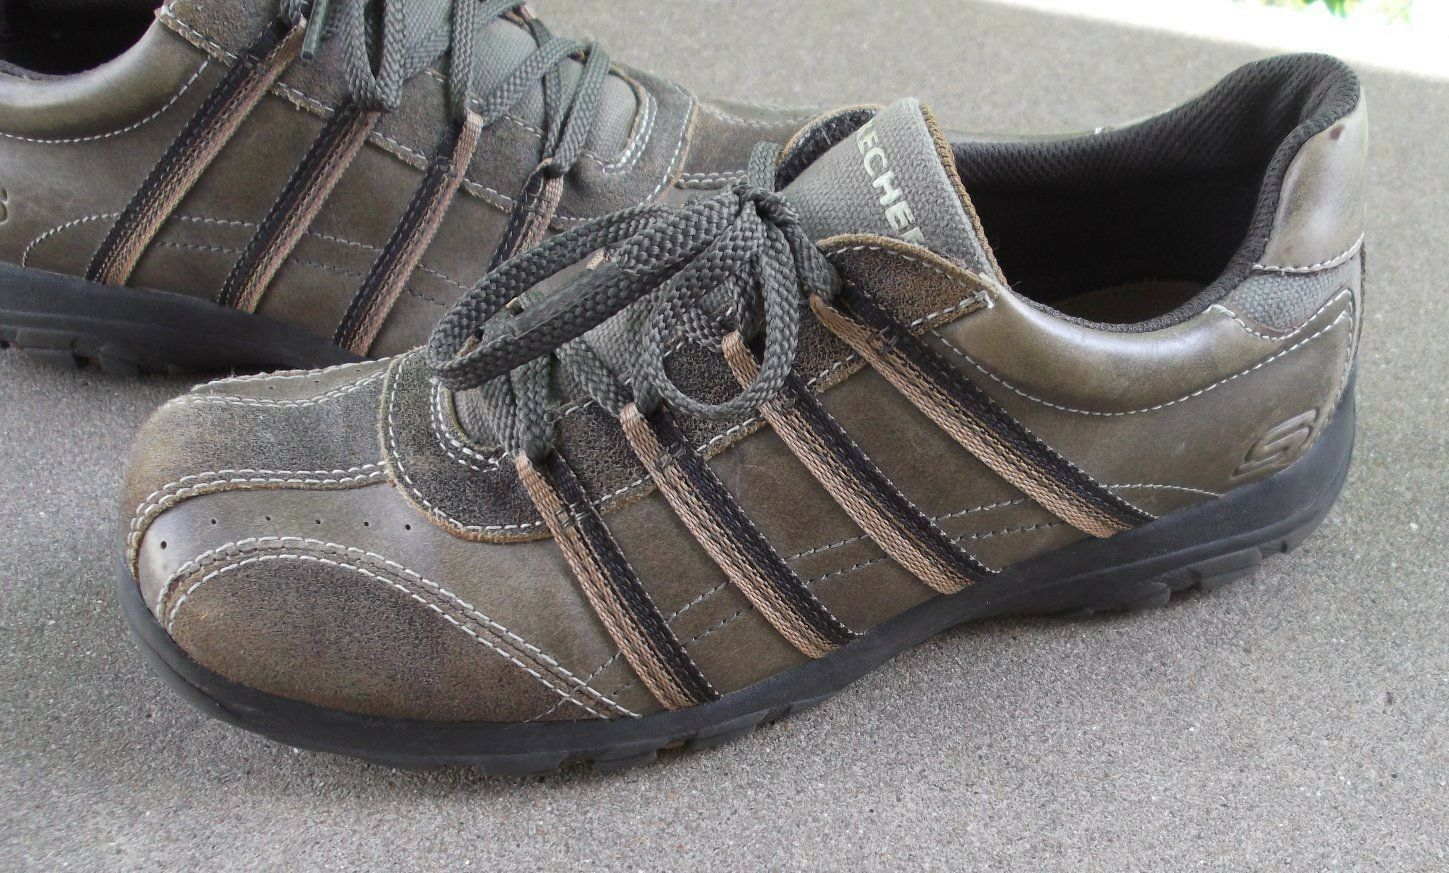 POPULAR Mens size SKECHERS Relax casual shoes size Mens US 6 M leather oxfords FREESHIPPIN 3bd171